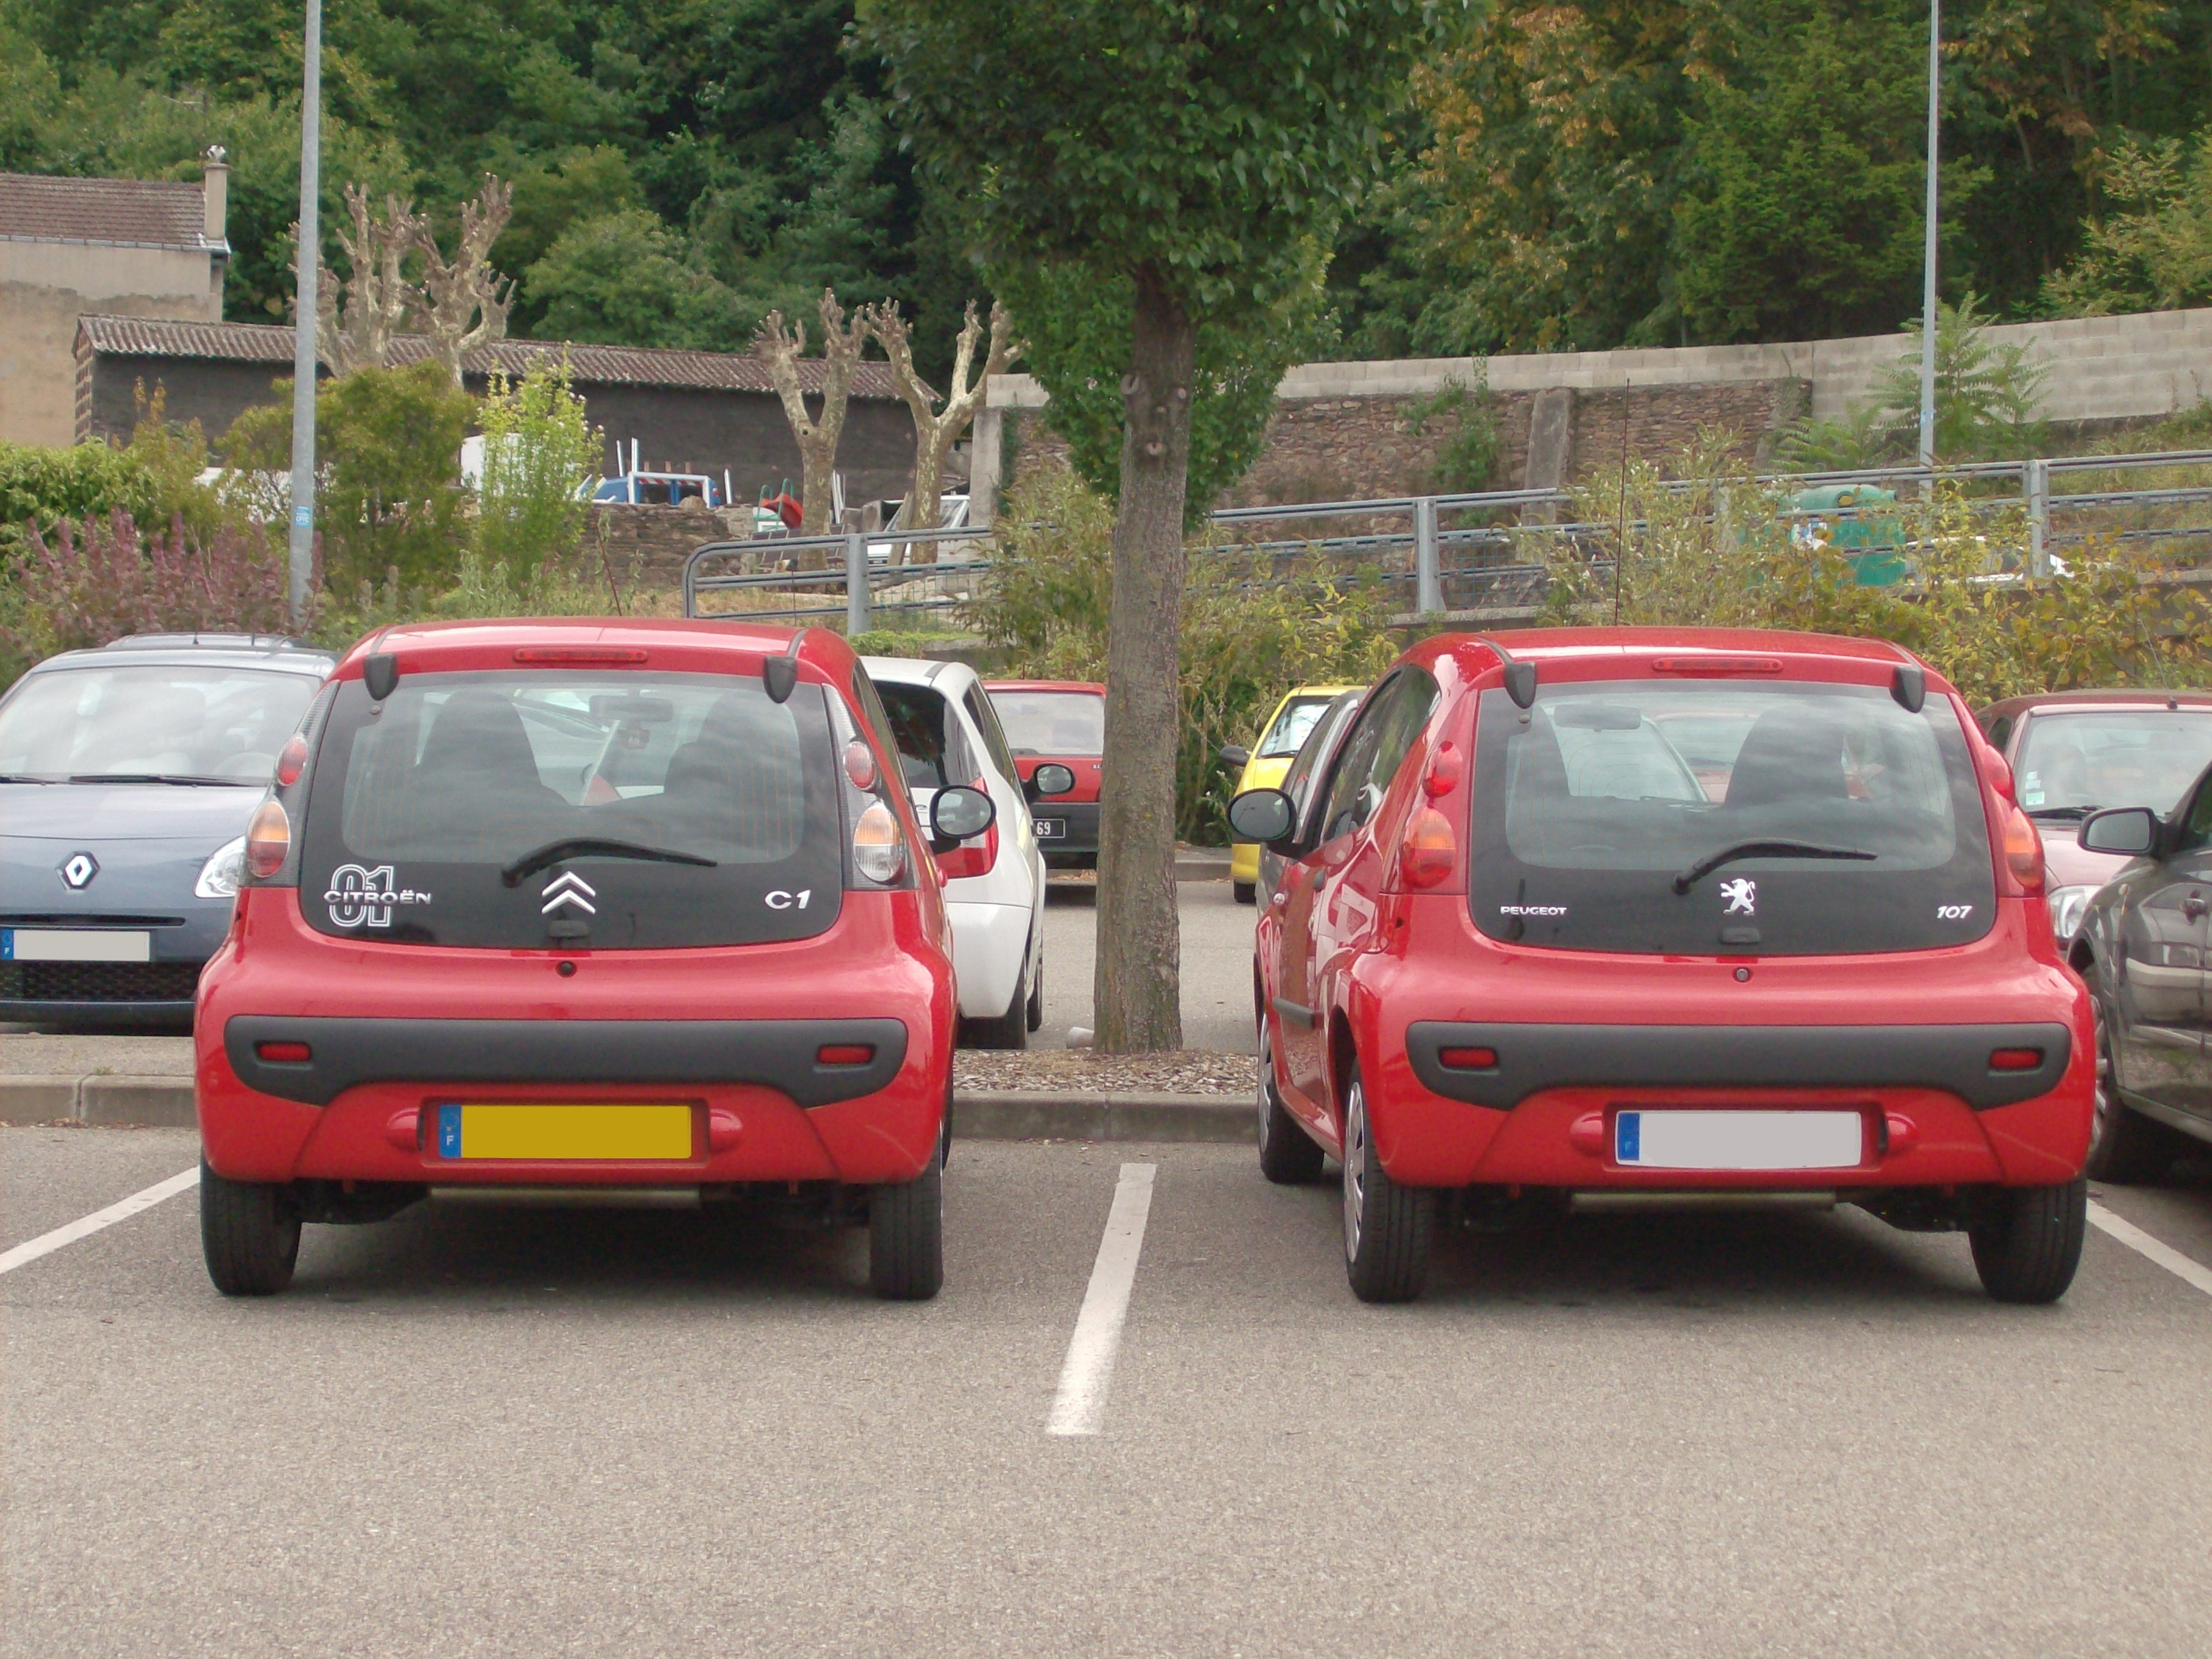 File:Peugeot 107 and Citroën C1.jpg